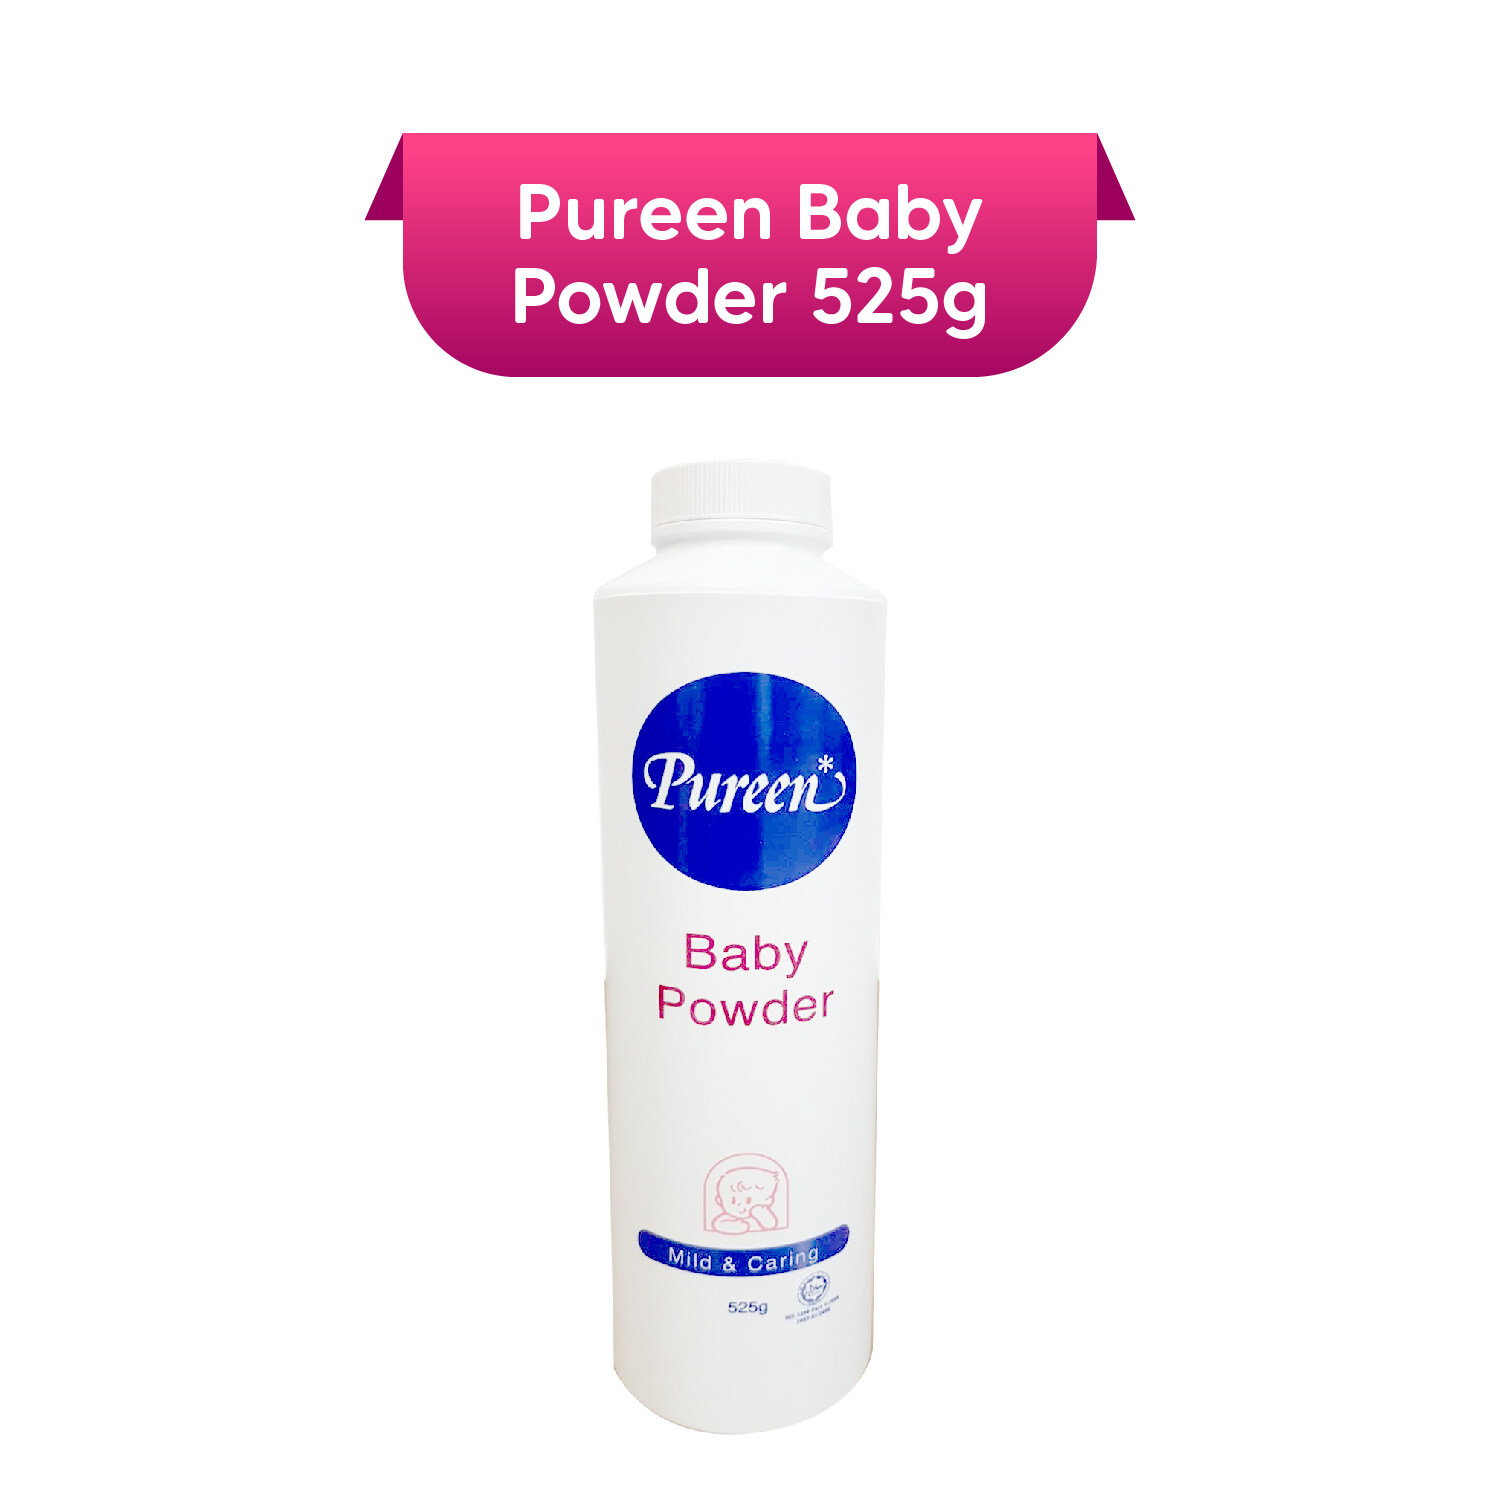 Pureen Baby Powder (525g)